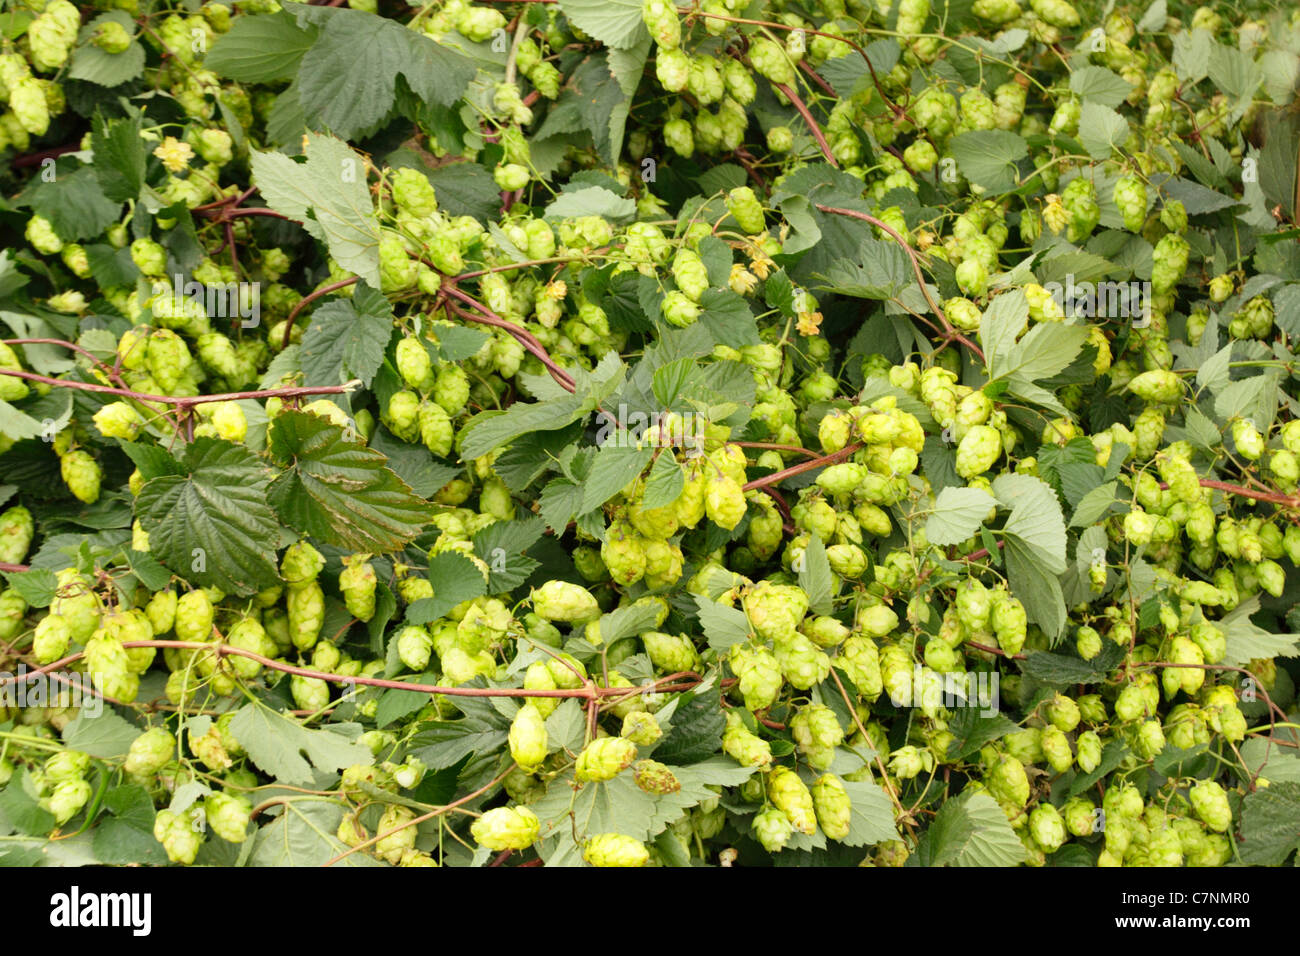 Close up of hops, humulus lupulus ,on hop bine showing climbing plant and hops ready for picking. - Stock Image